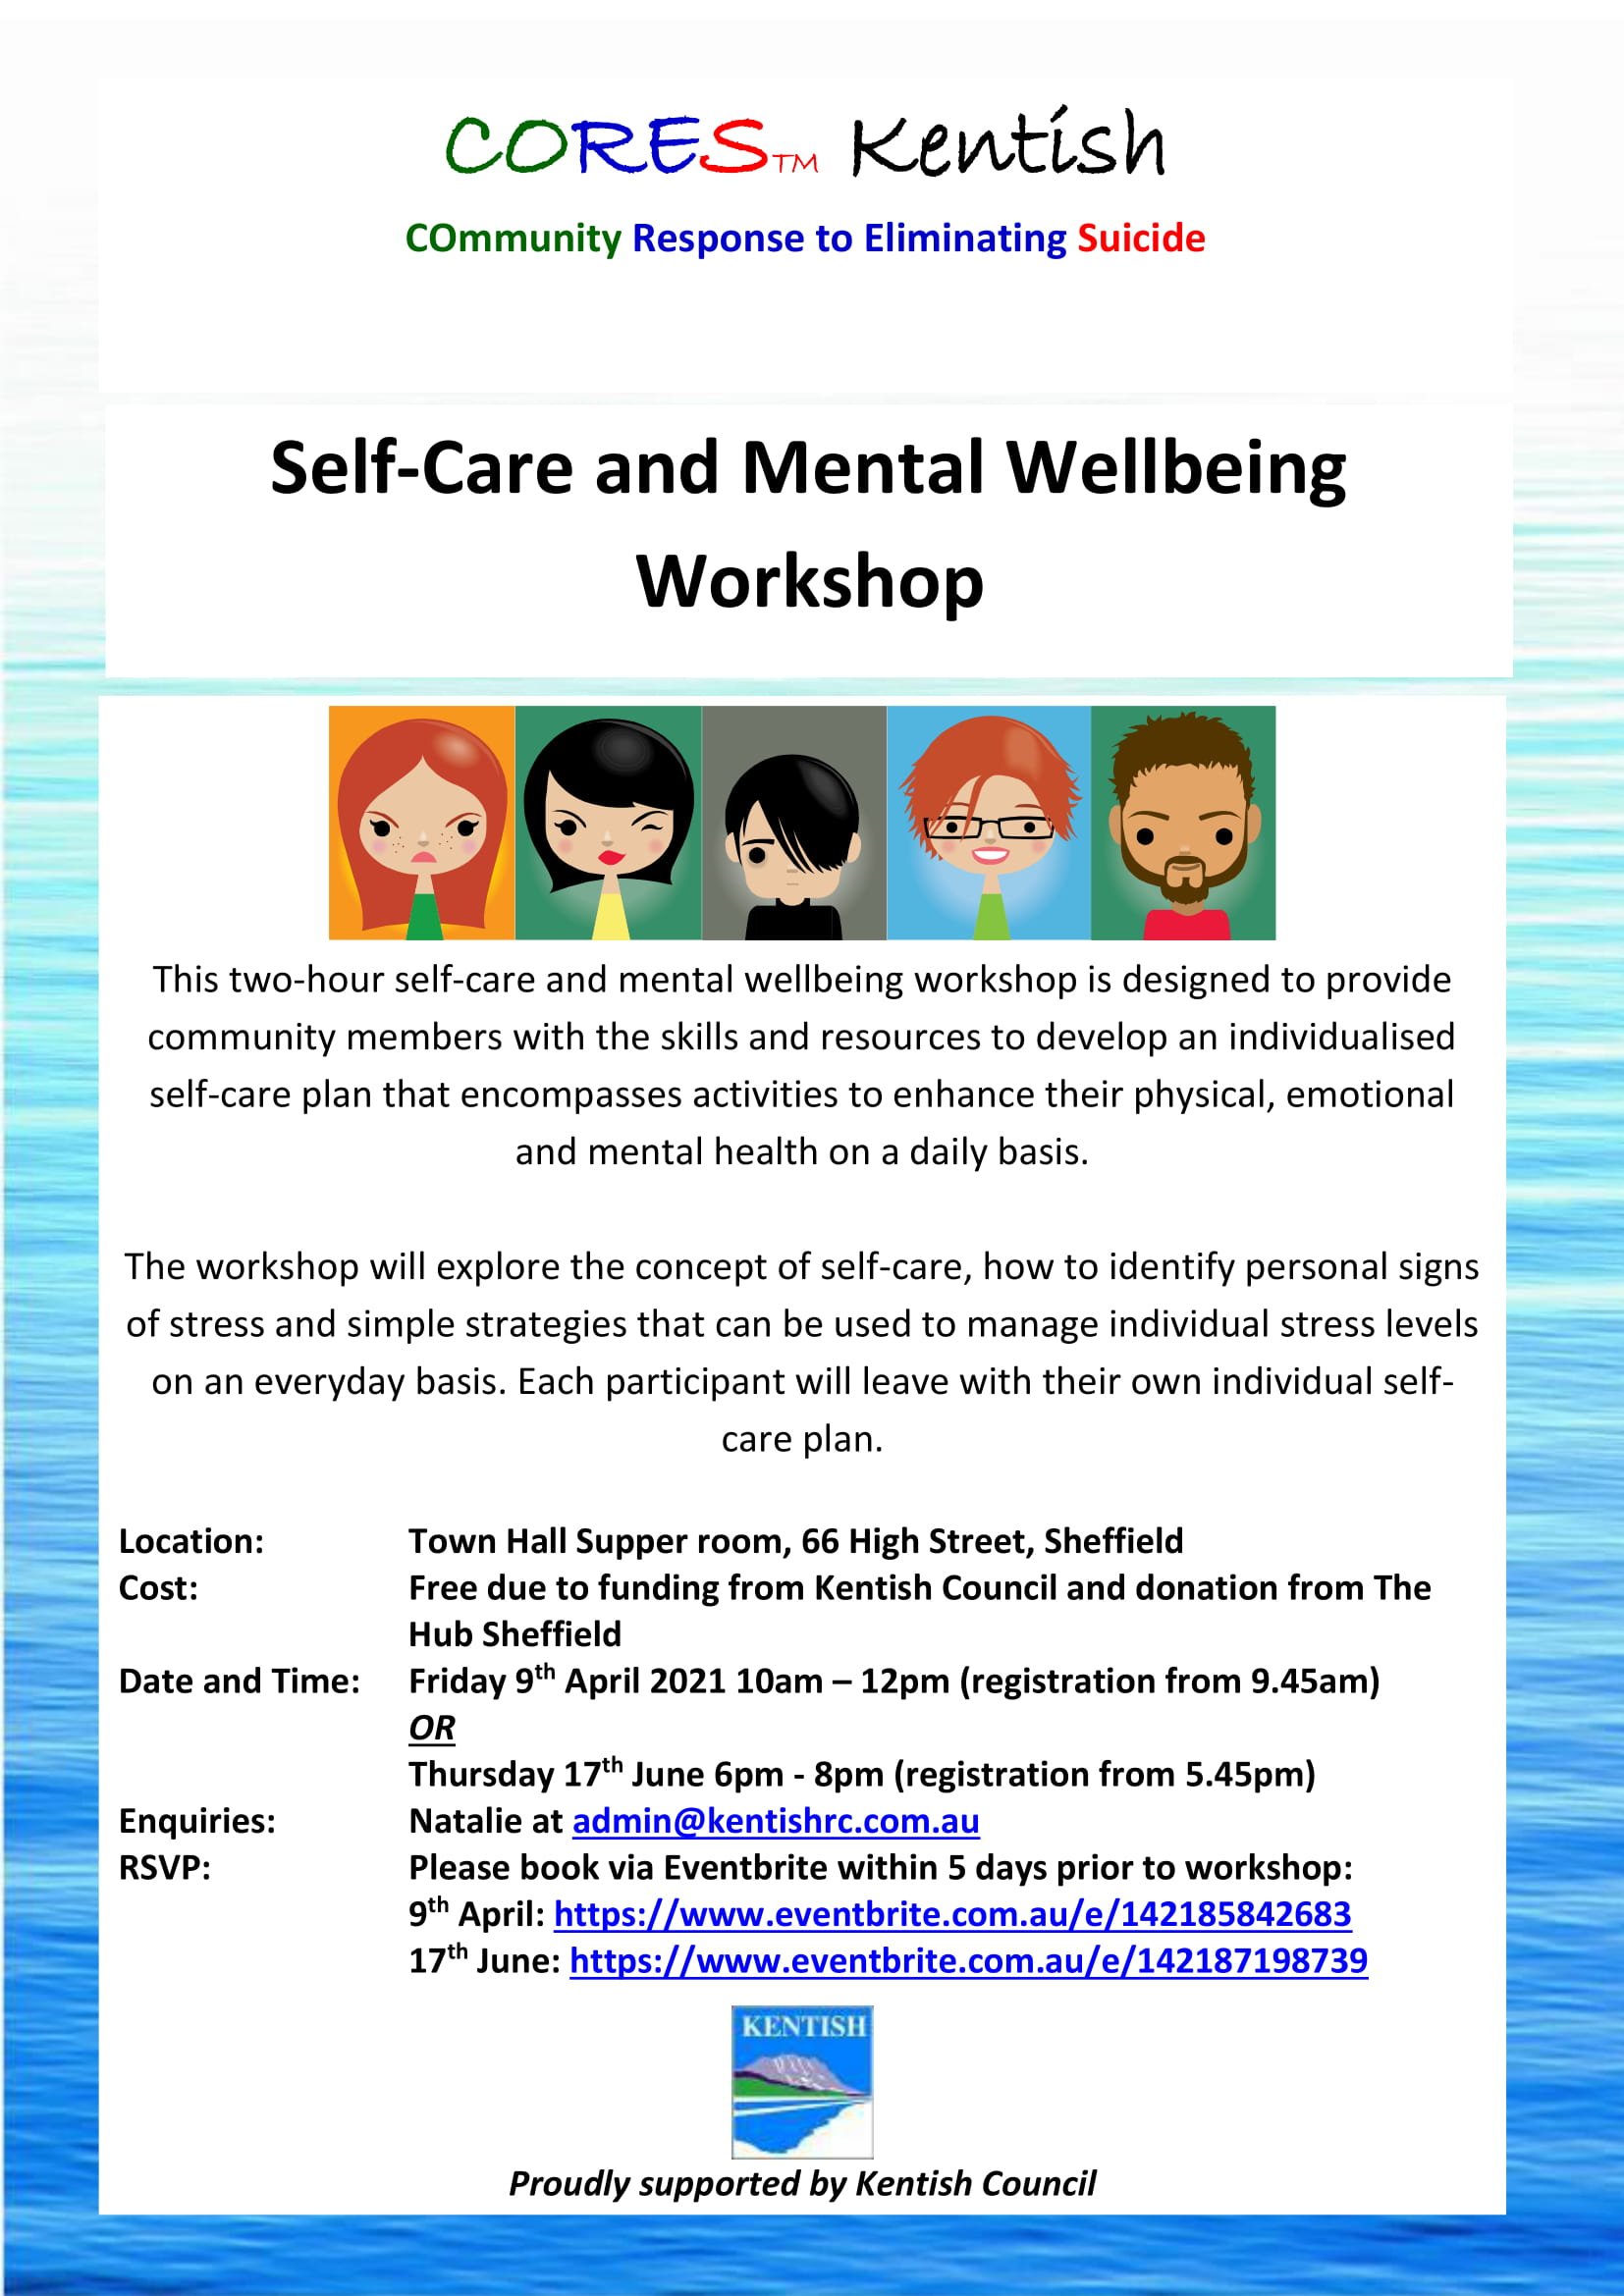 CORES Self-Care and Mental Wellbeing Kentish 2021-1